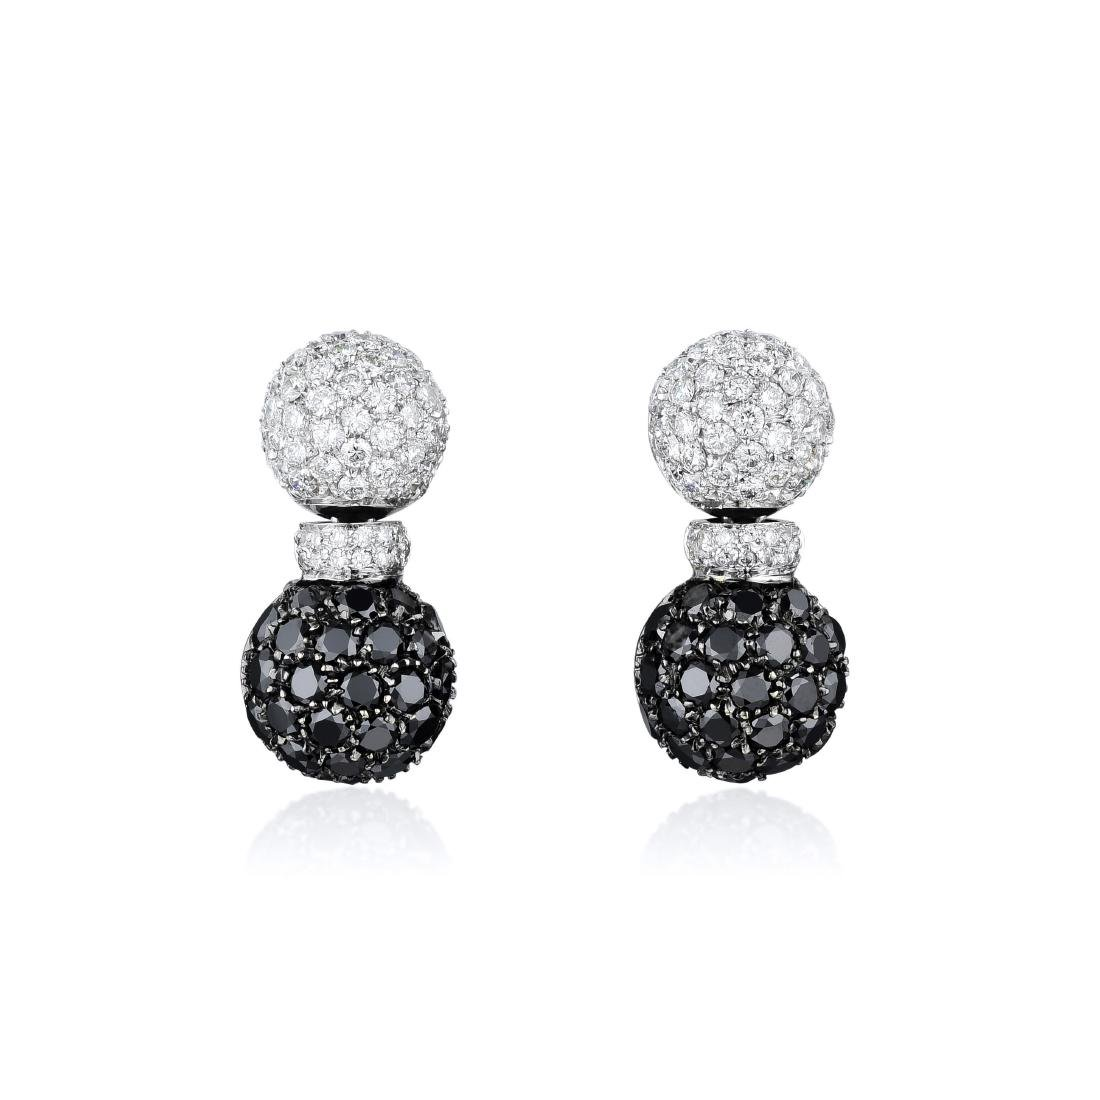 Valente 18K White Gold Diamond Earclips